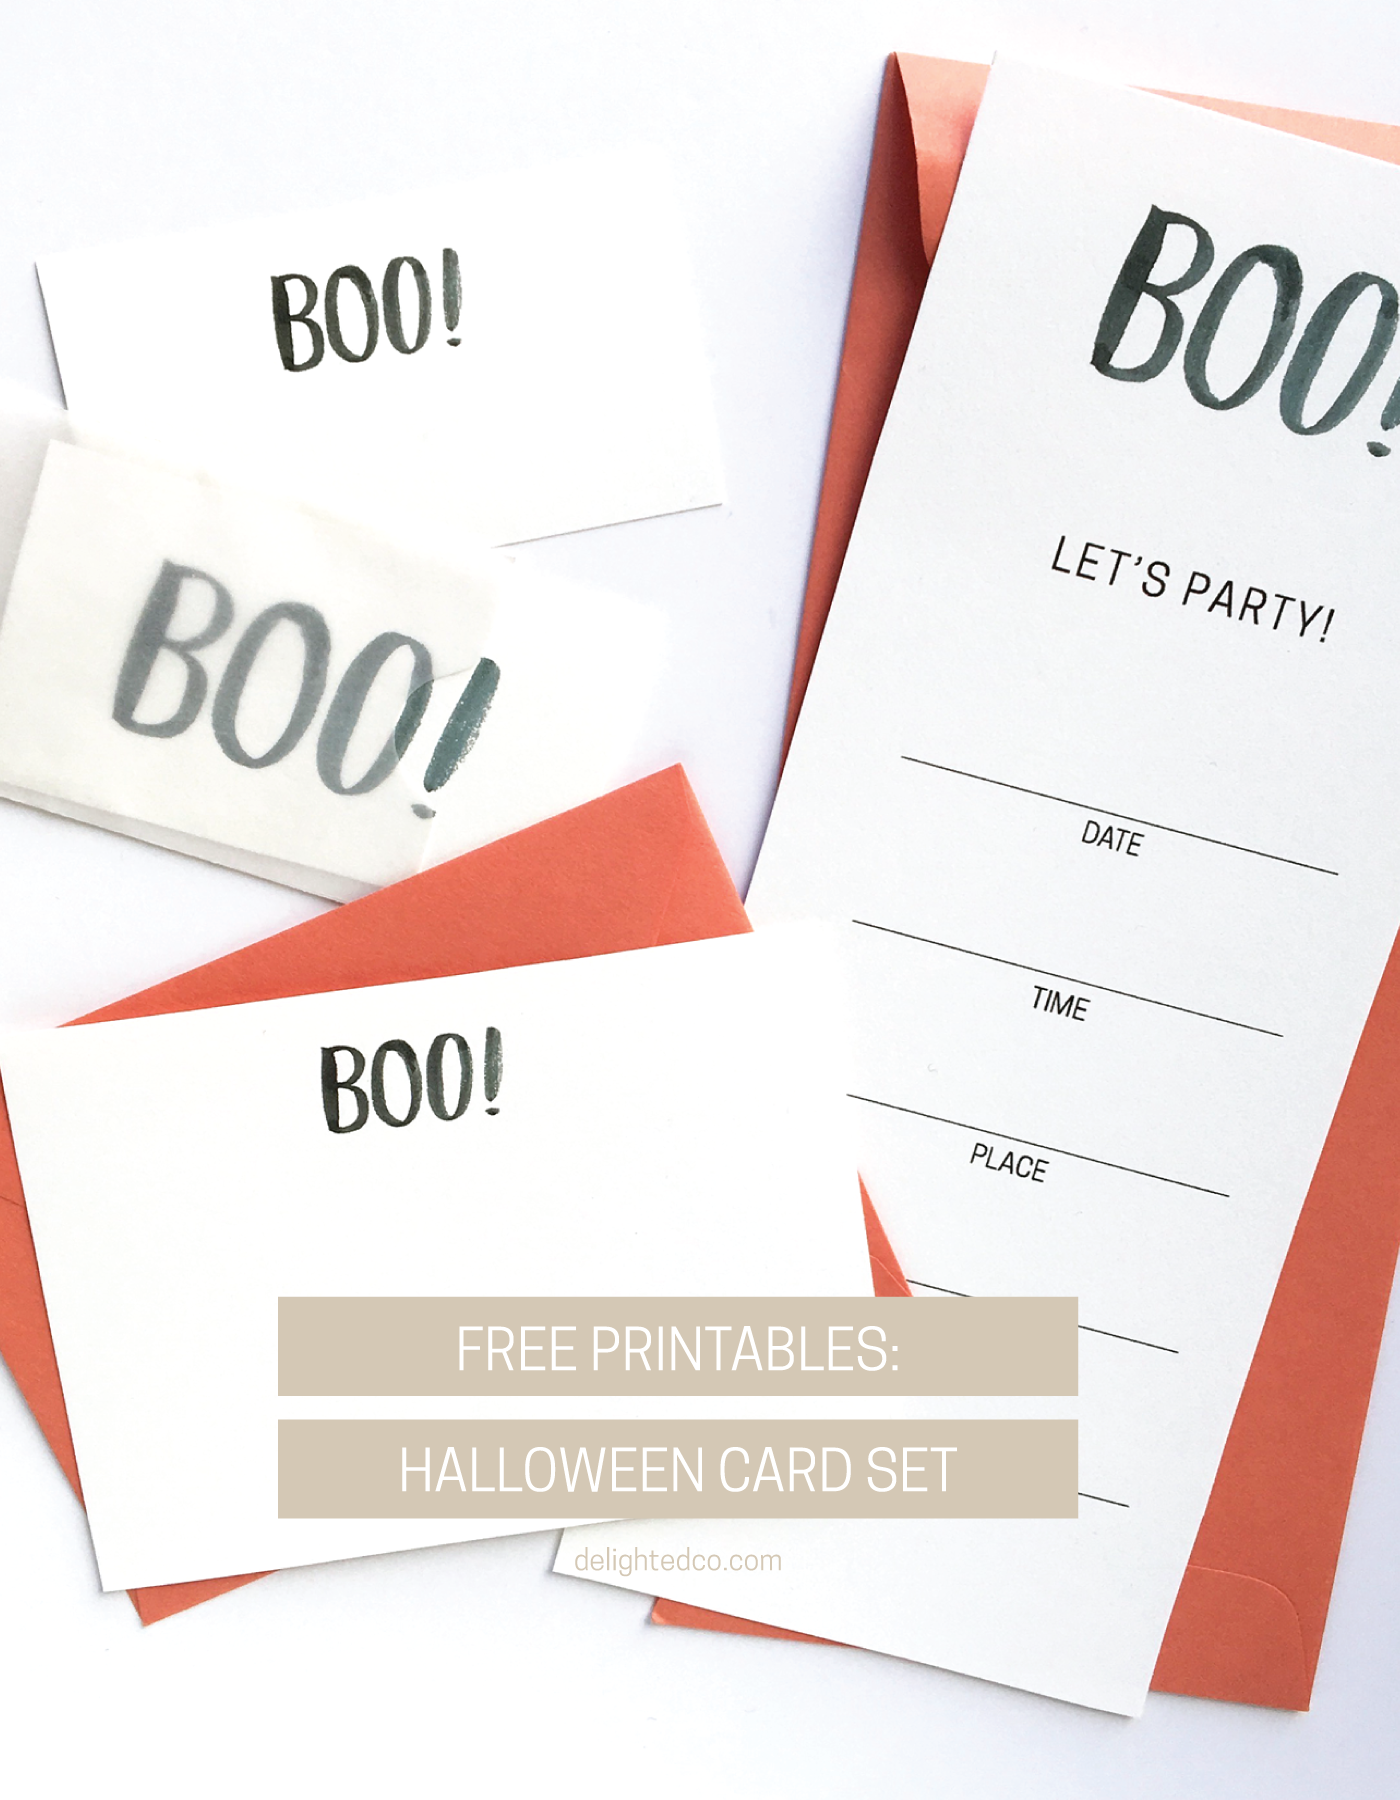 Free Halloween Printables: Cards + Invitation  |  Delighted Creative Co.